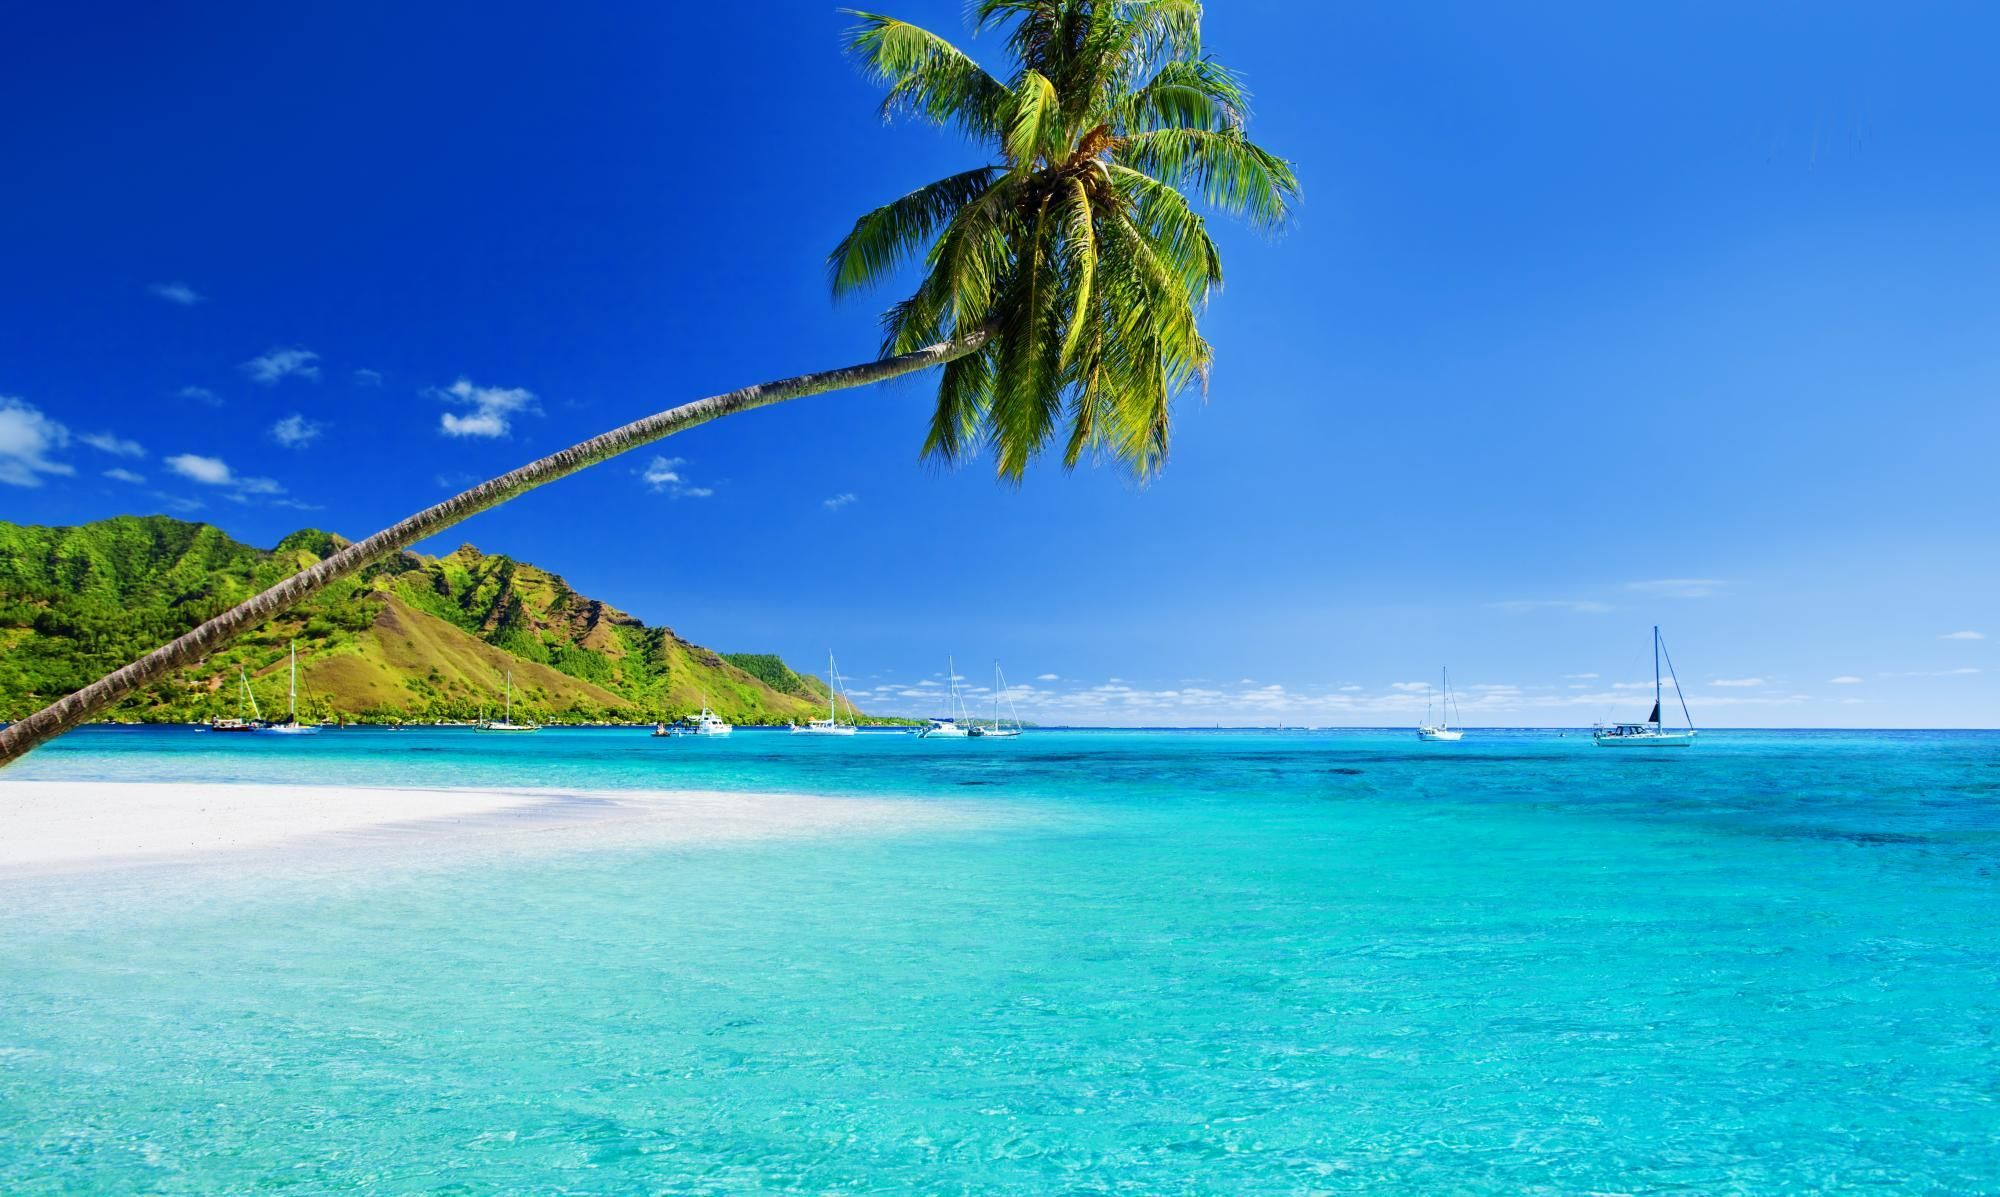 Explore the beautiful Caribbean islands with